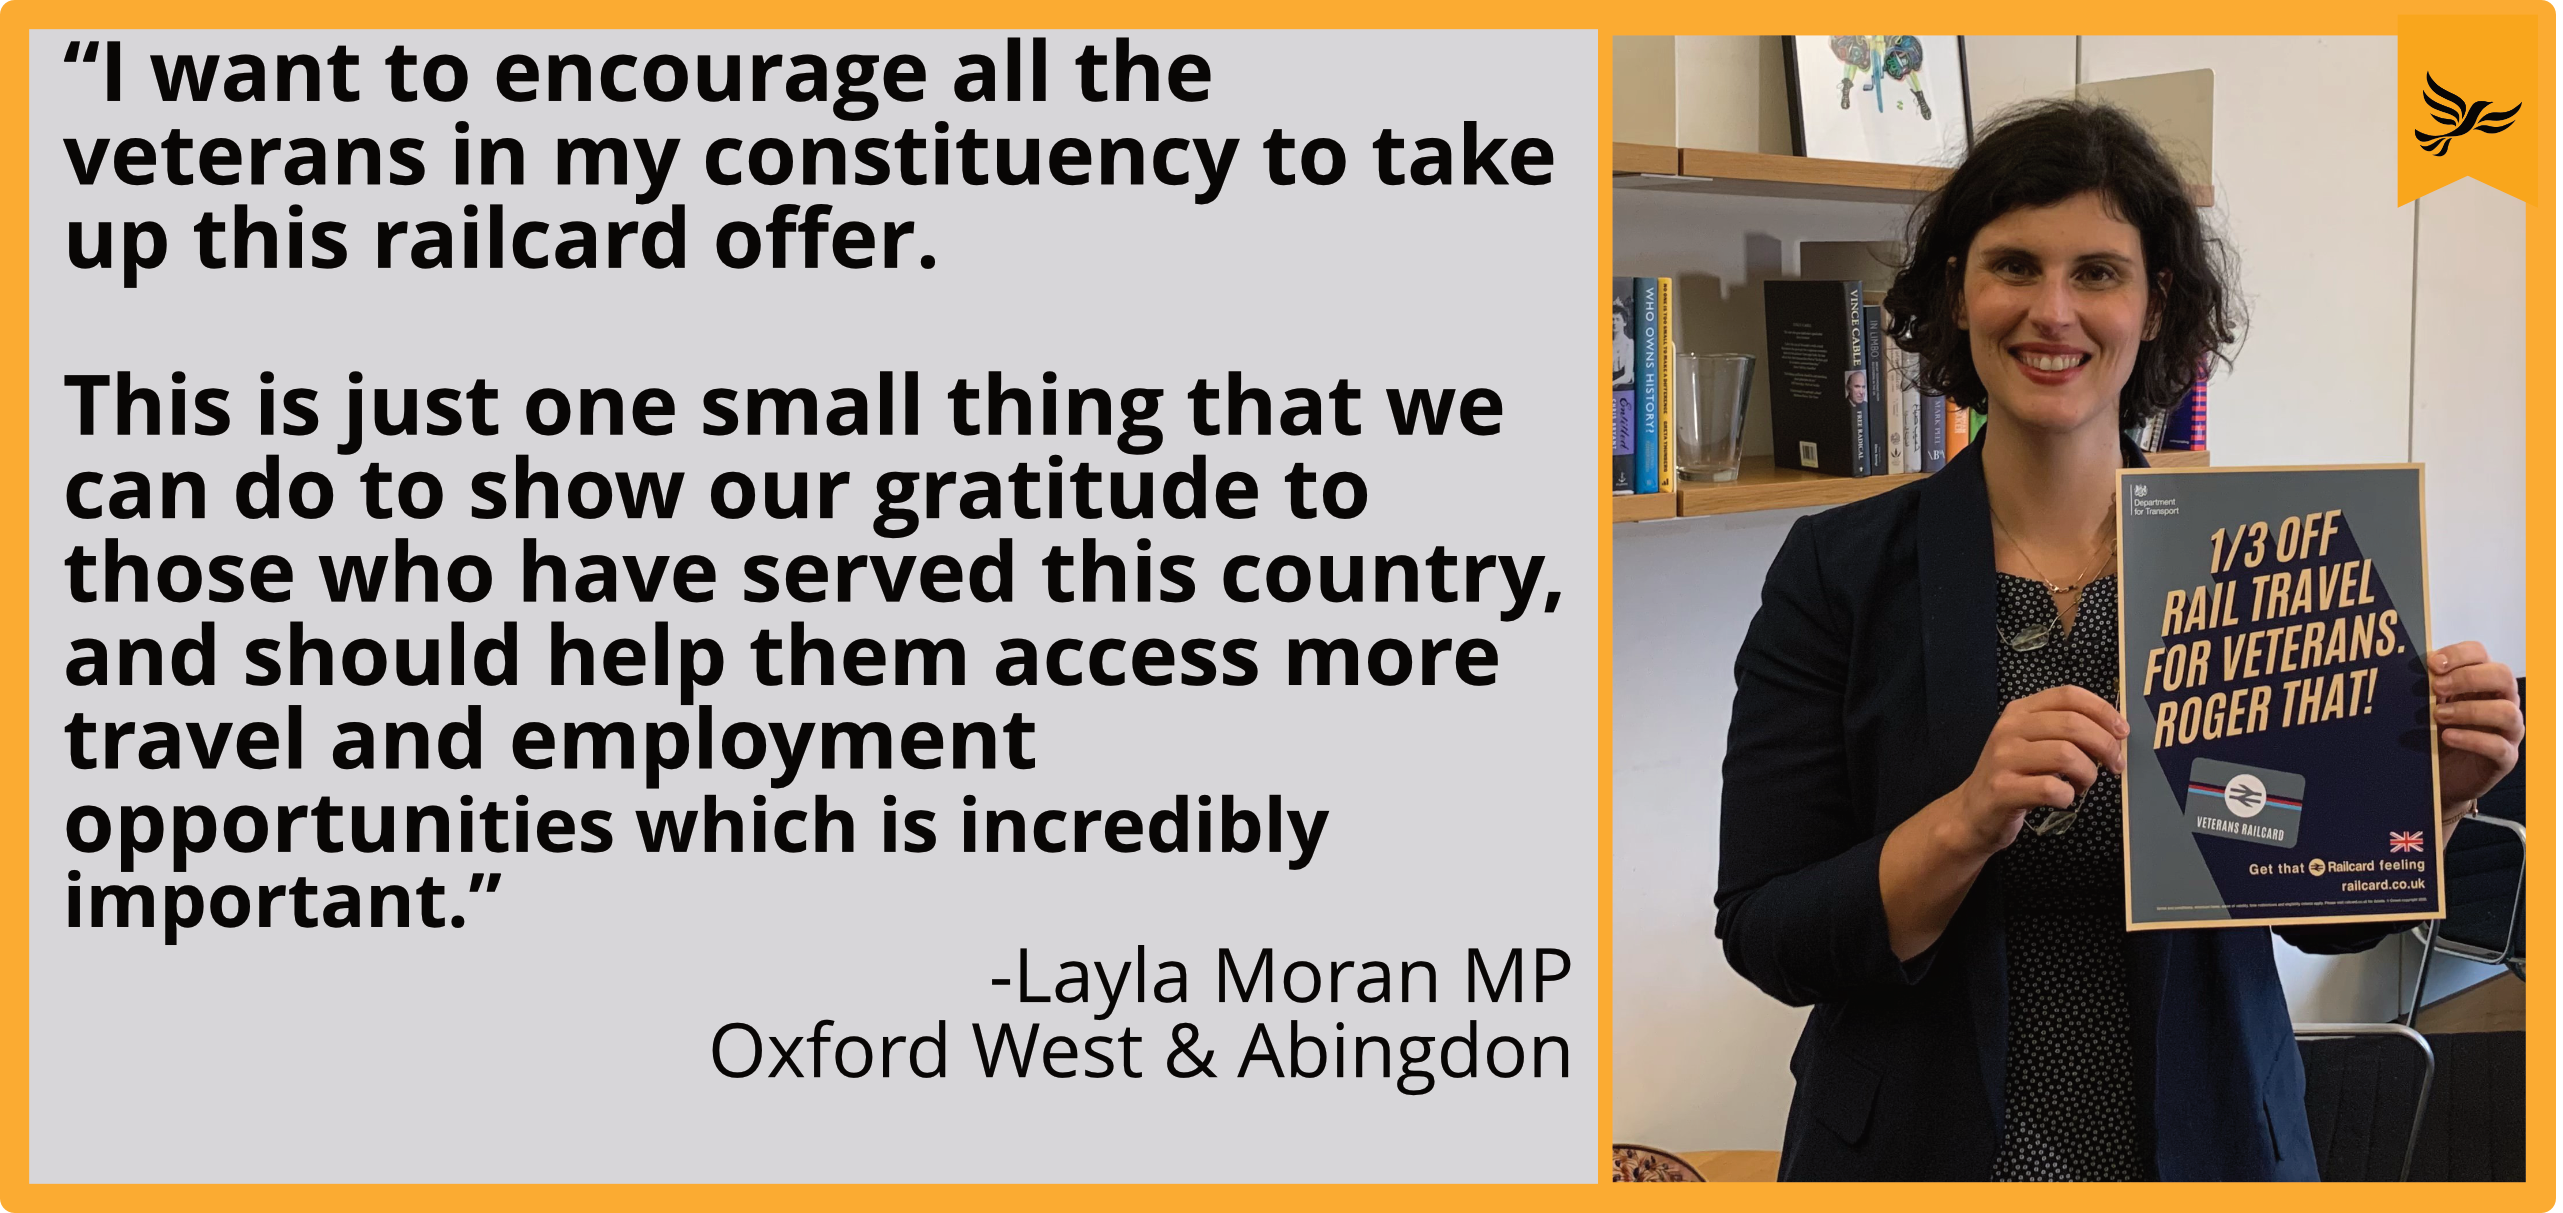 """Key_""""I want to encourage all the veterans in my constituency to take up this railcard offer.  """"This is just one small thing that we can do to show our gratitude to those who have served this country, and should help them access more travel and employment opportunities which is incredibly important. image copyright Layla Moran MP"""